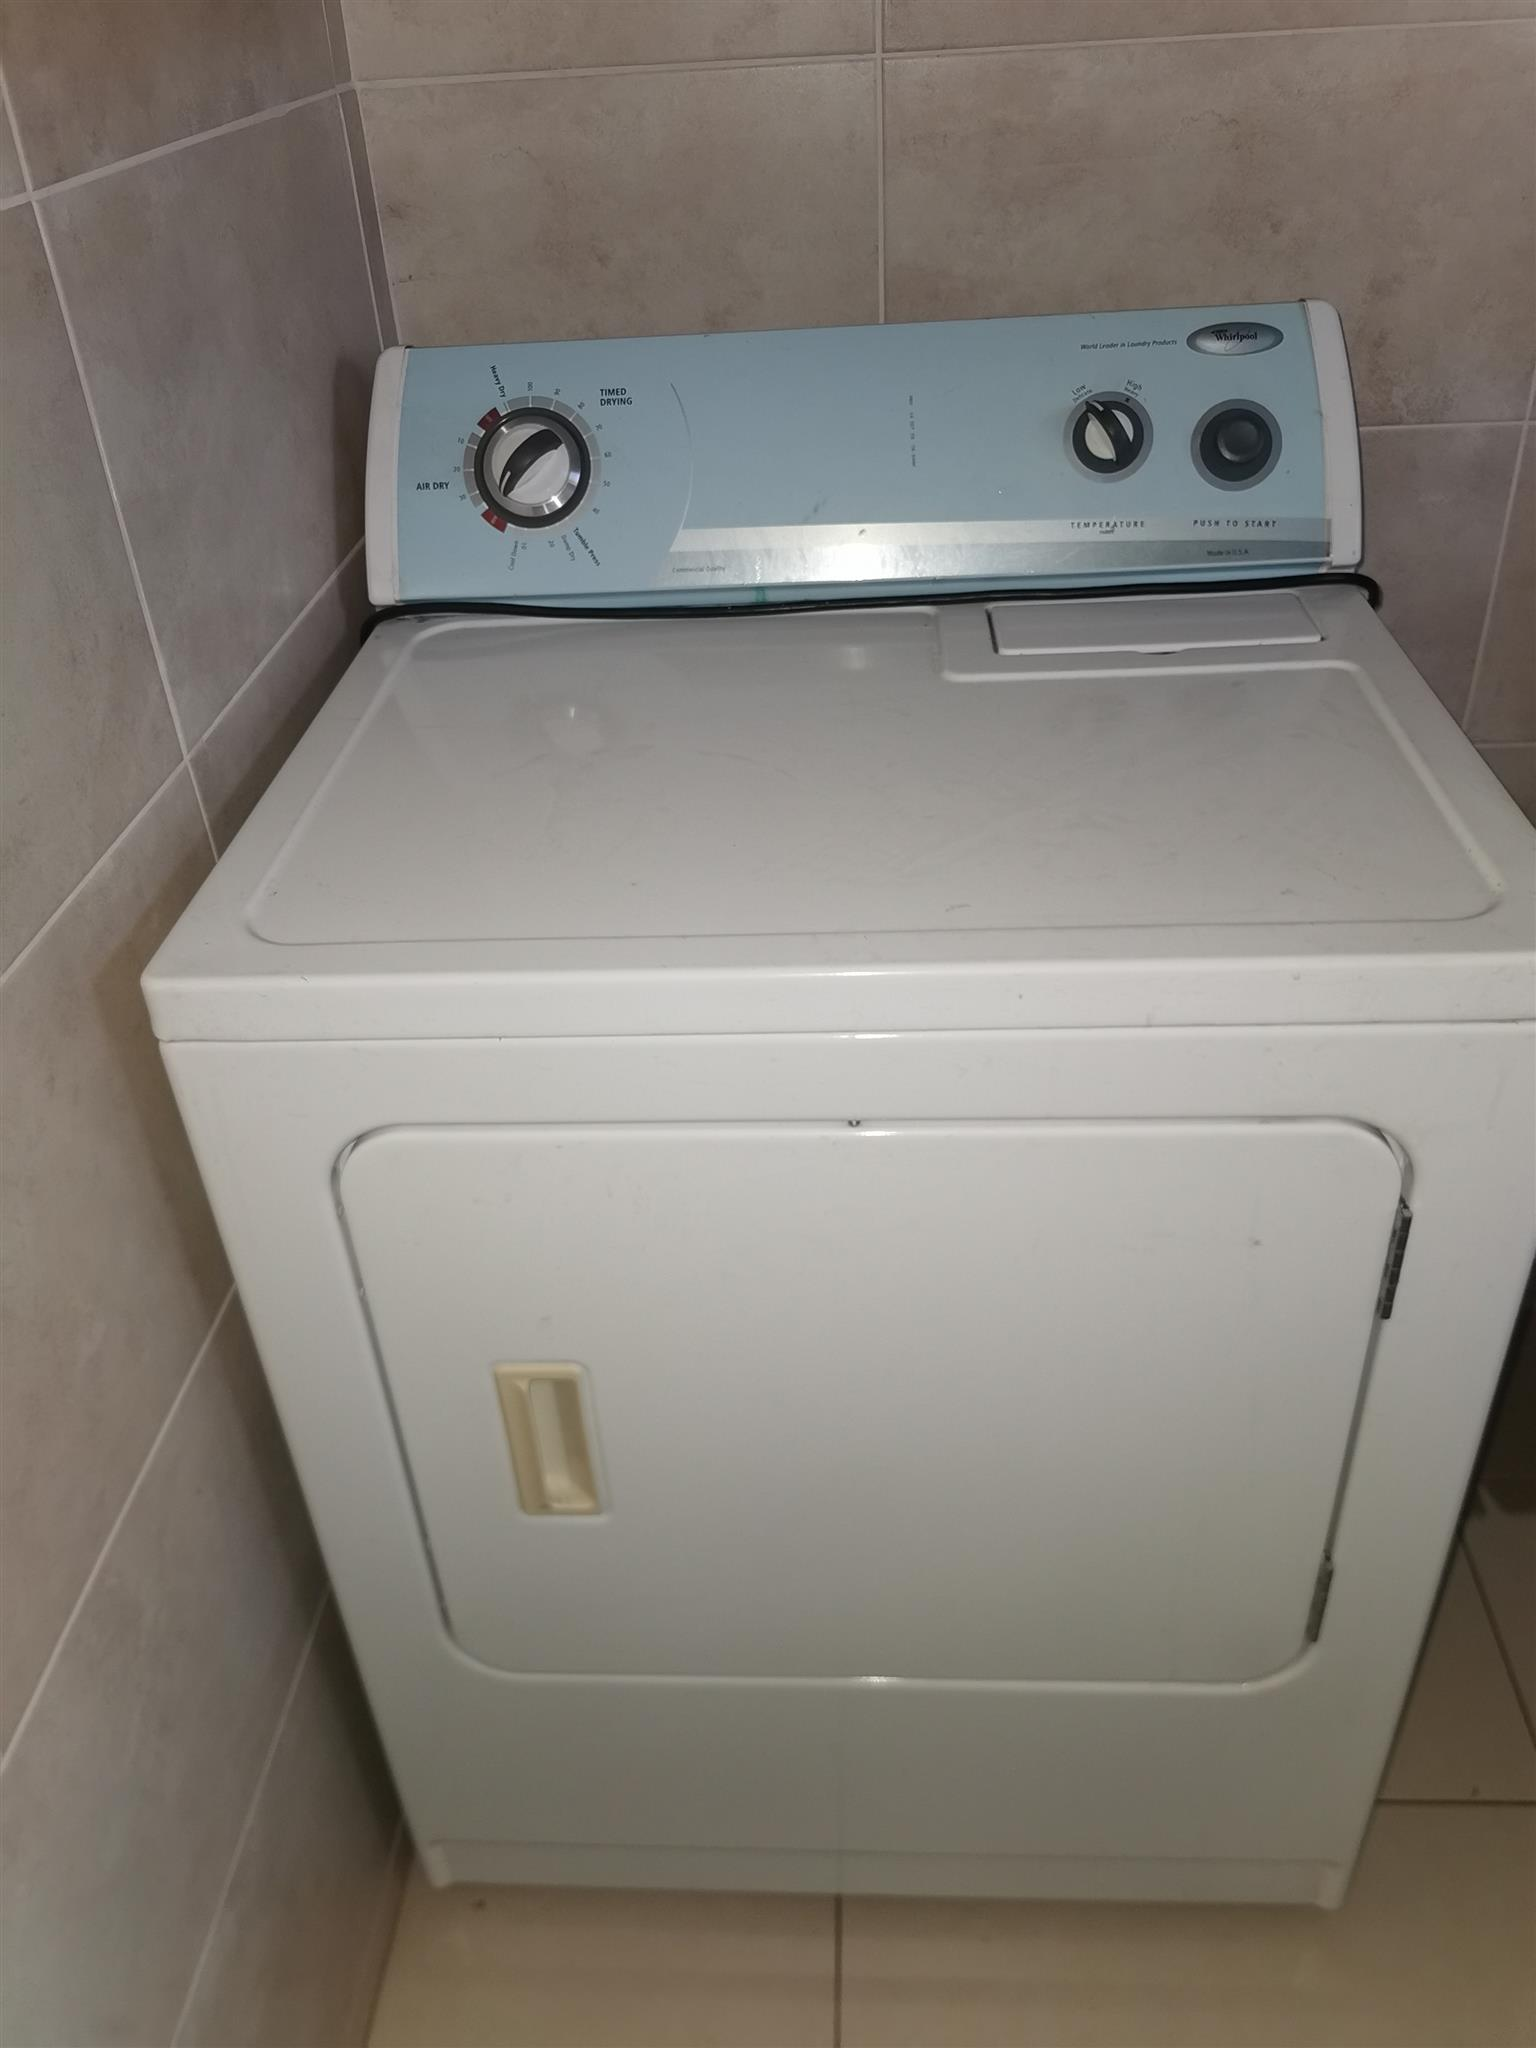 Whirlpool product